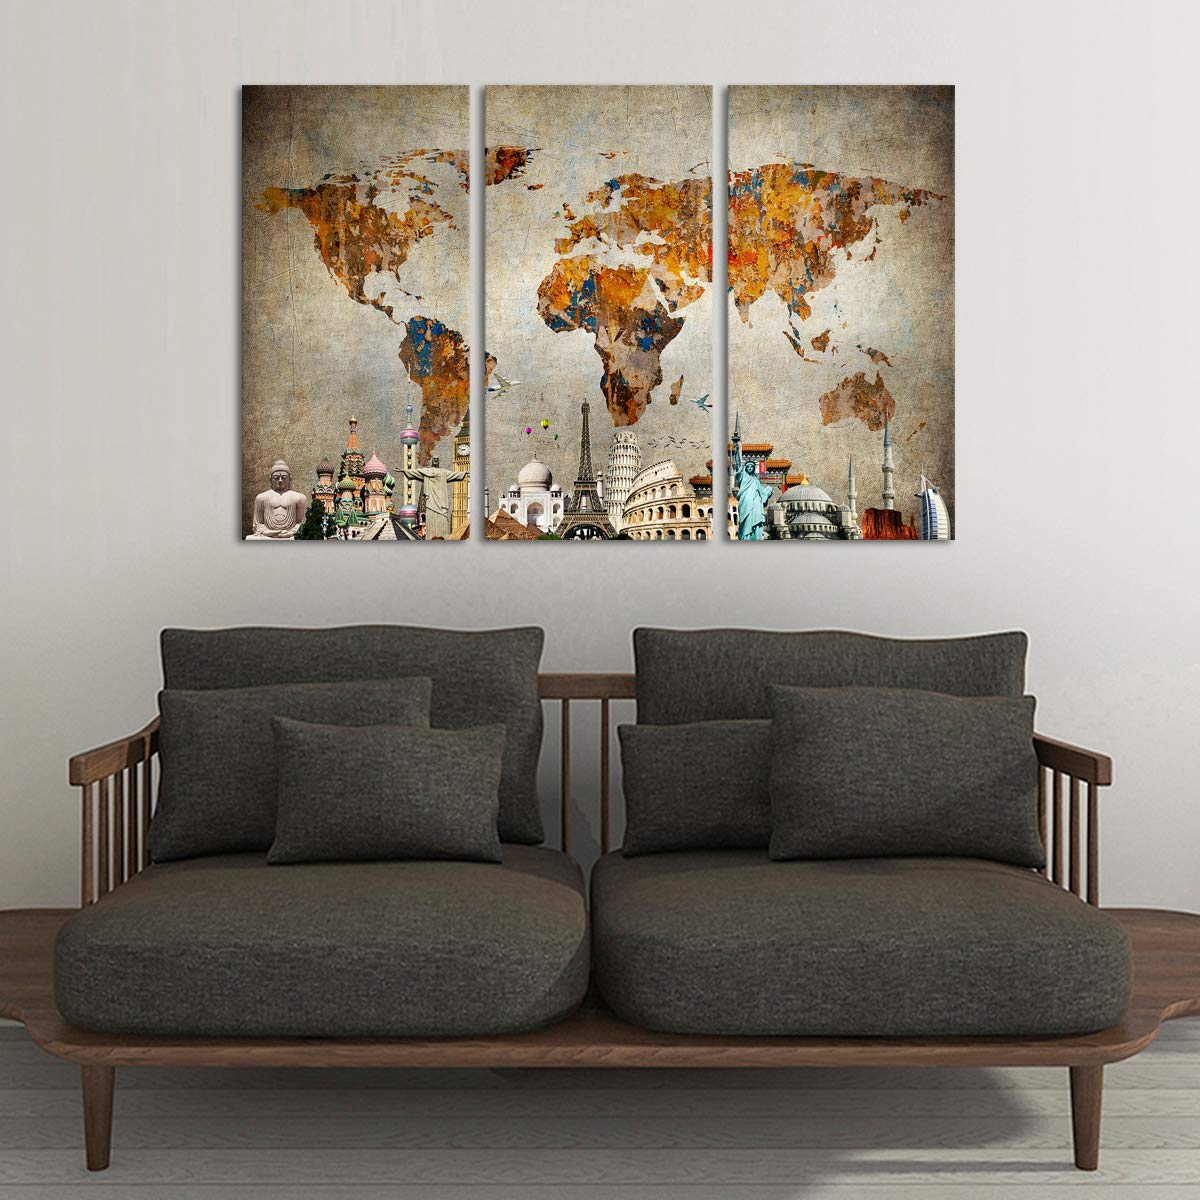 """Grunge World Map Monuments Canvas Wall Art - Ready to Hang - Large Wonders of the World Artwork Hanging Print for Home Office, Living Room, Bedroom, Kitchen, Bathroom - Made in USA - 3 Panel 47"""" x 30"""""""